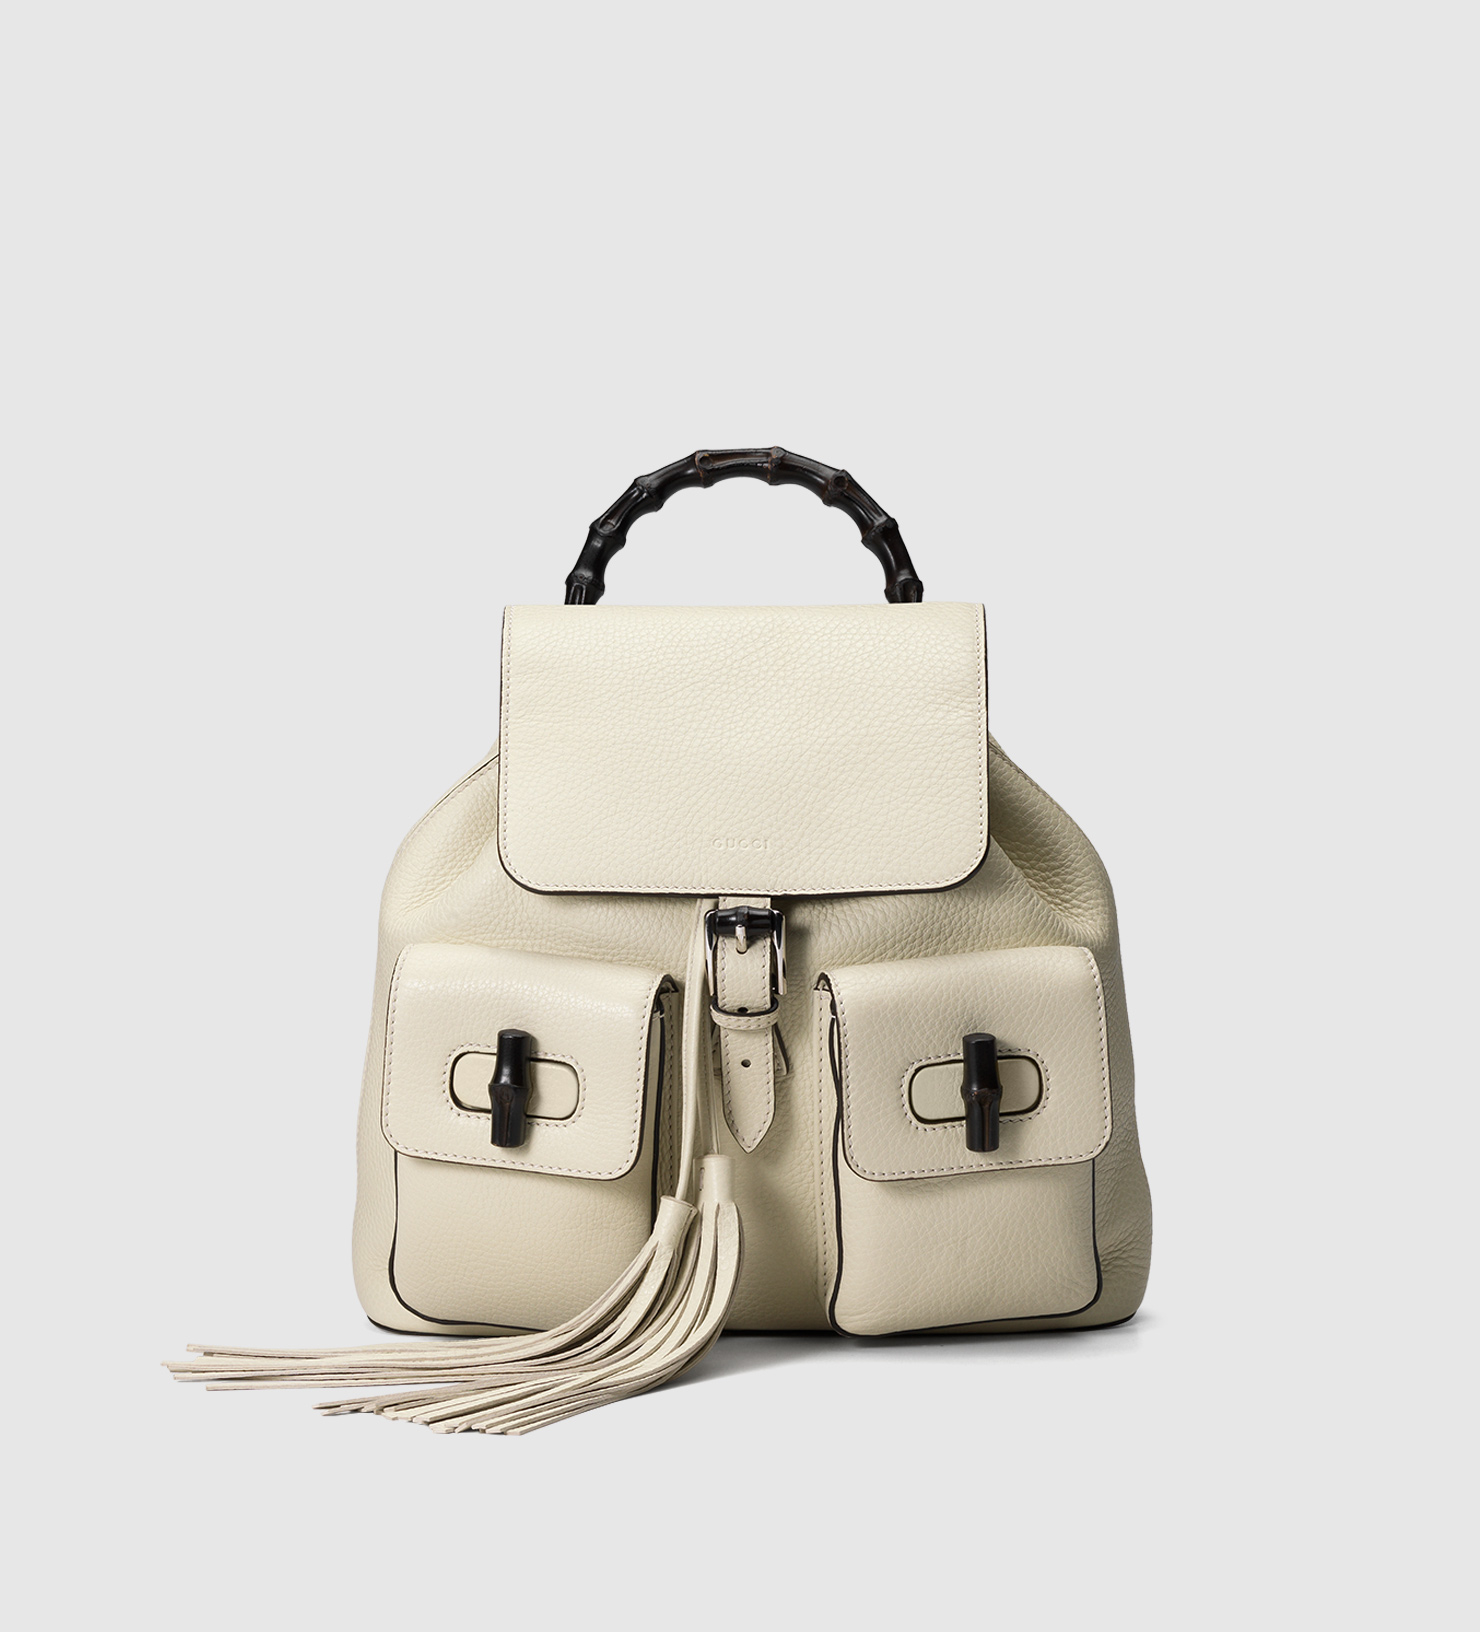 4da4fcf80 Gucci Bamboo Leather Backpack in Natural - Lyst